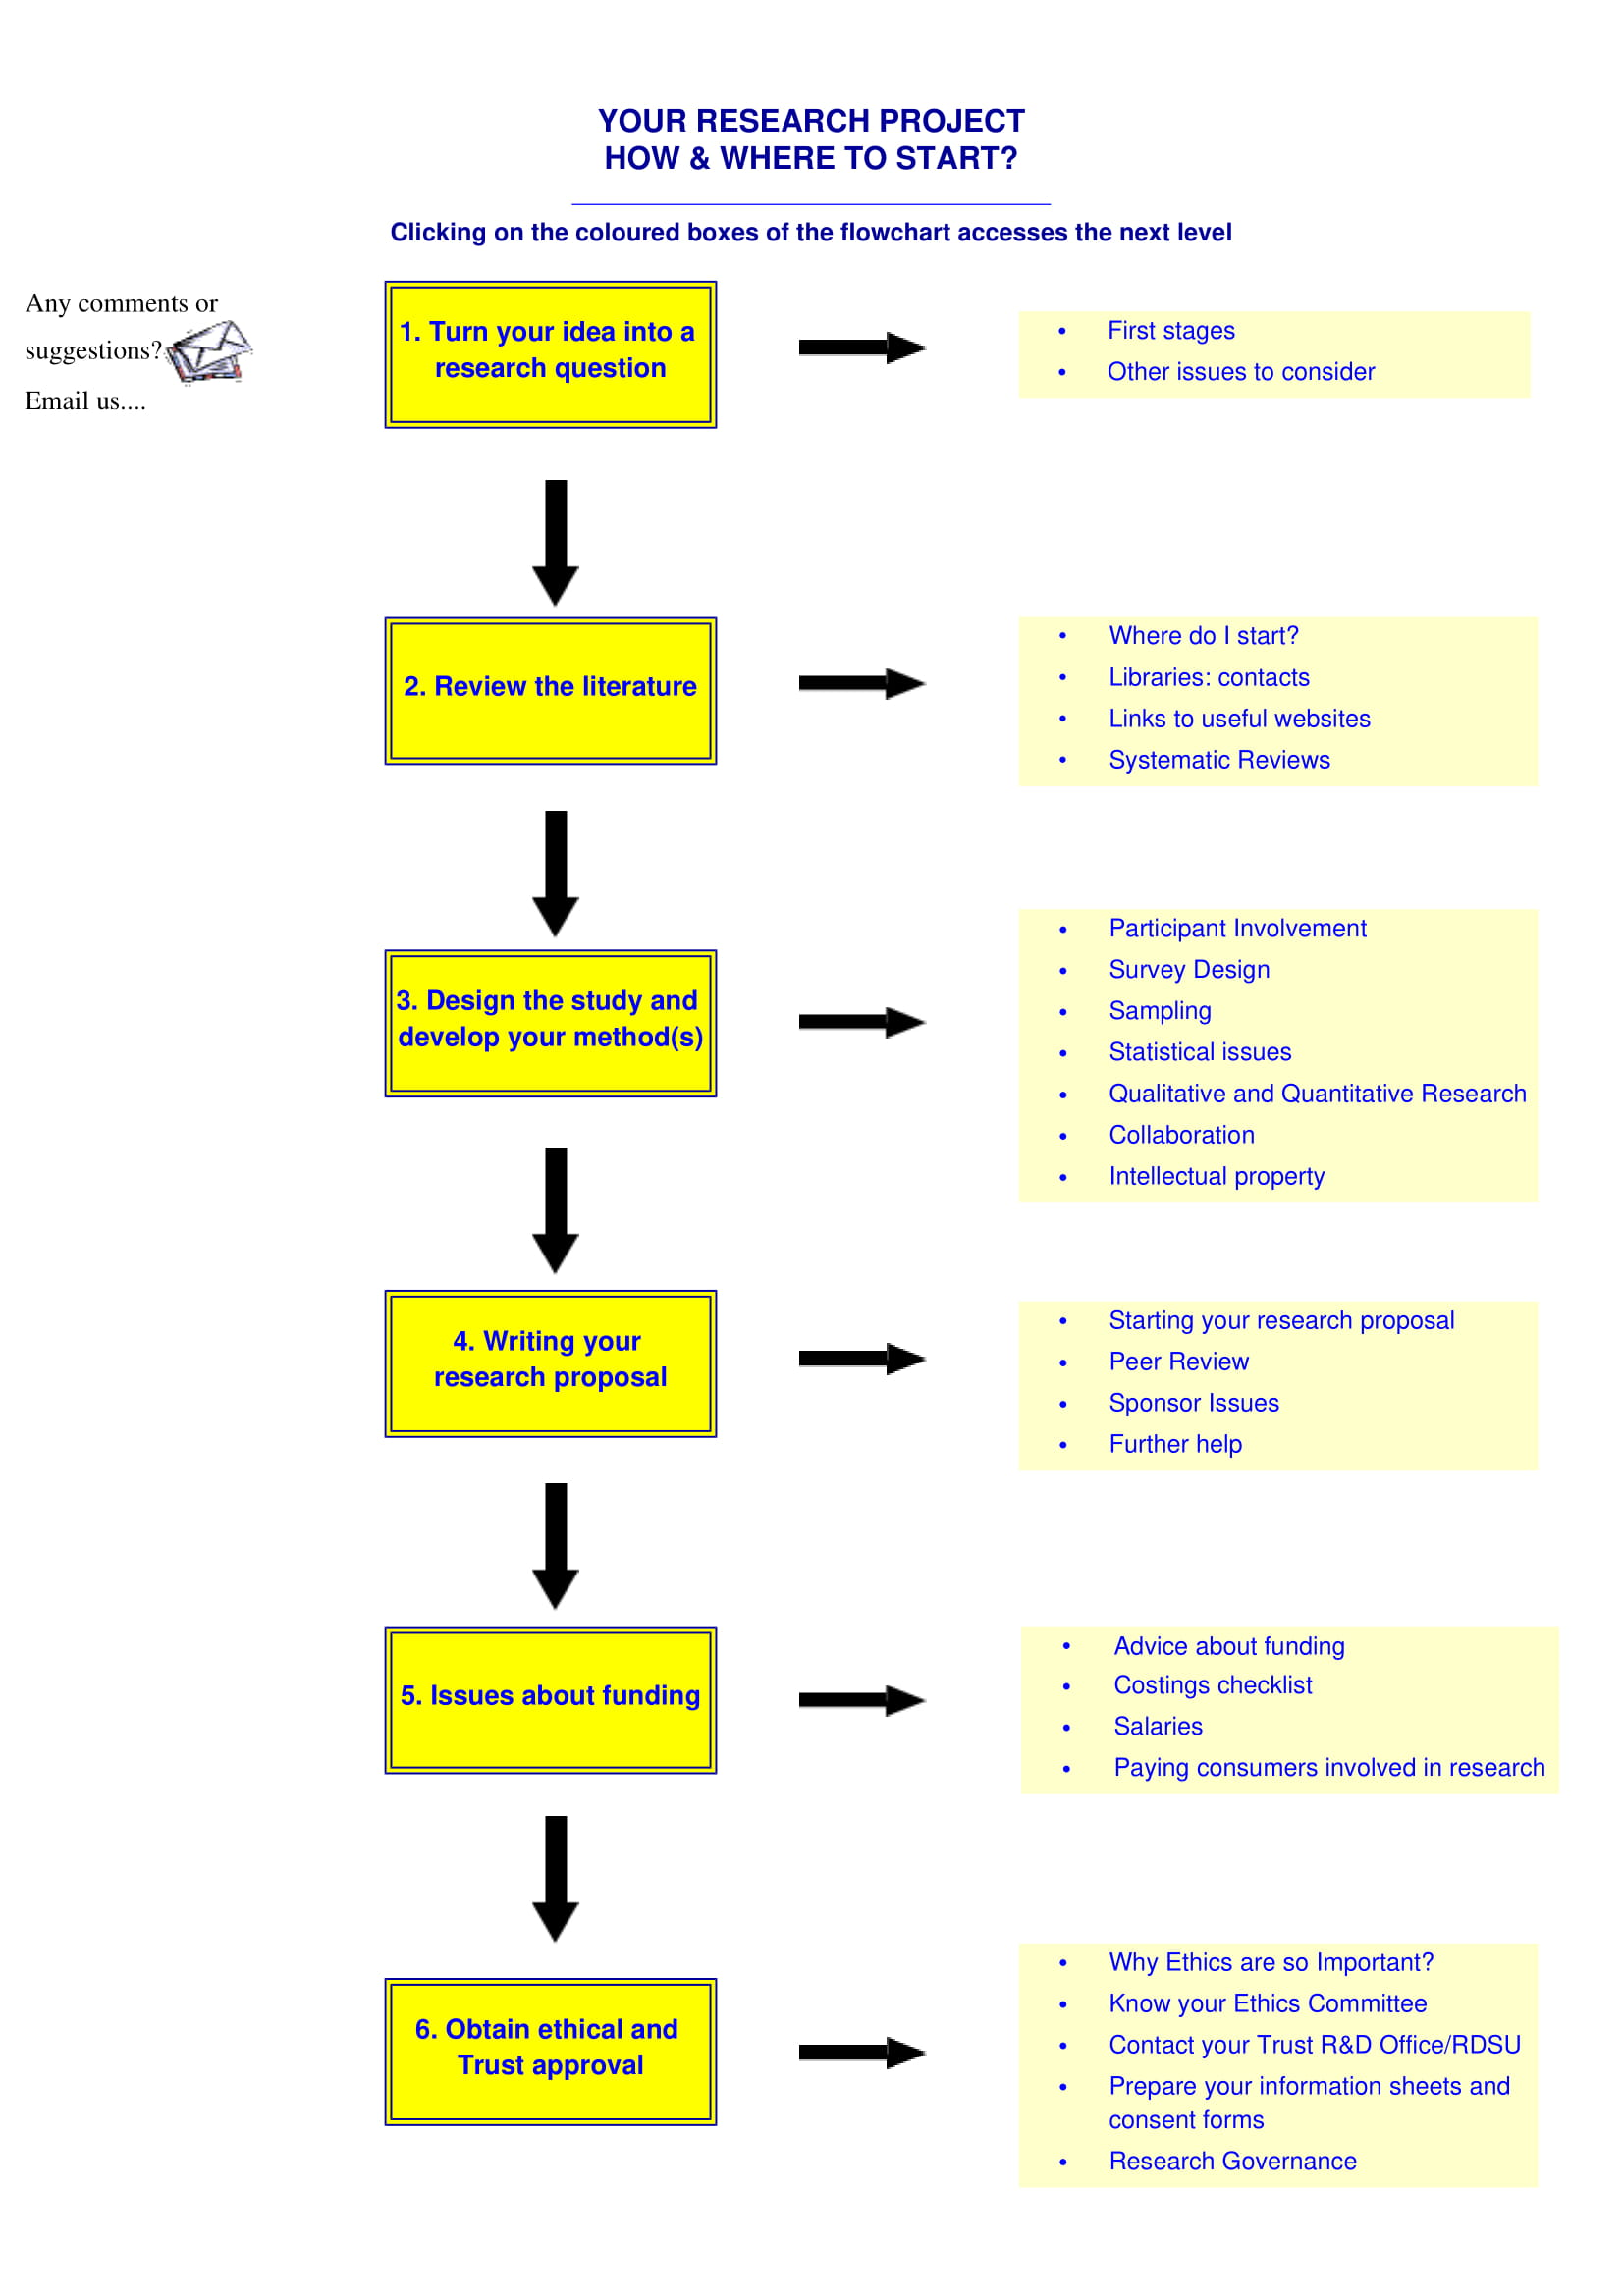 research project flowchart example